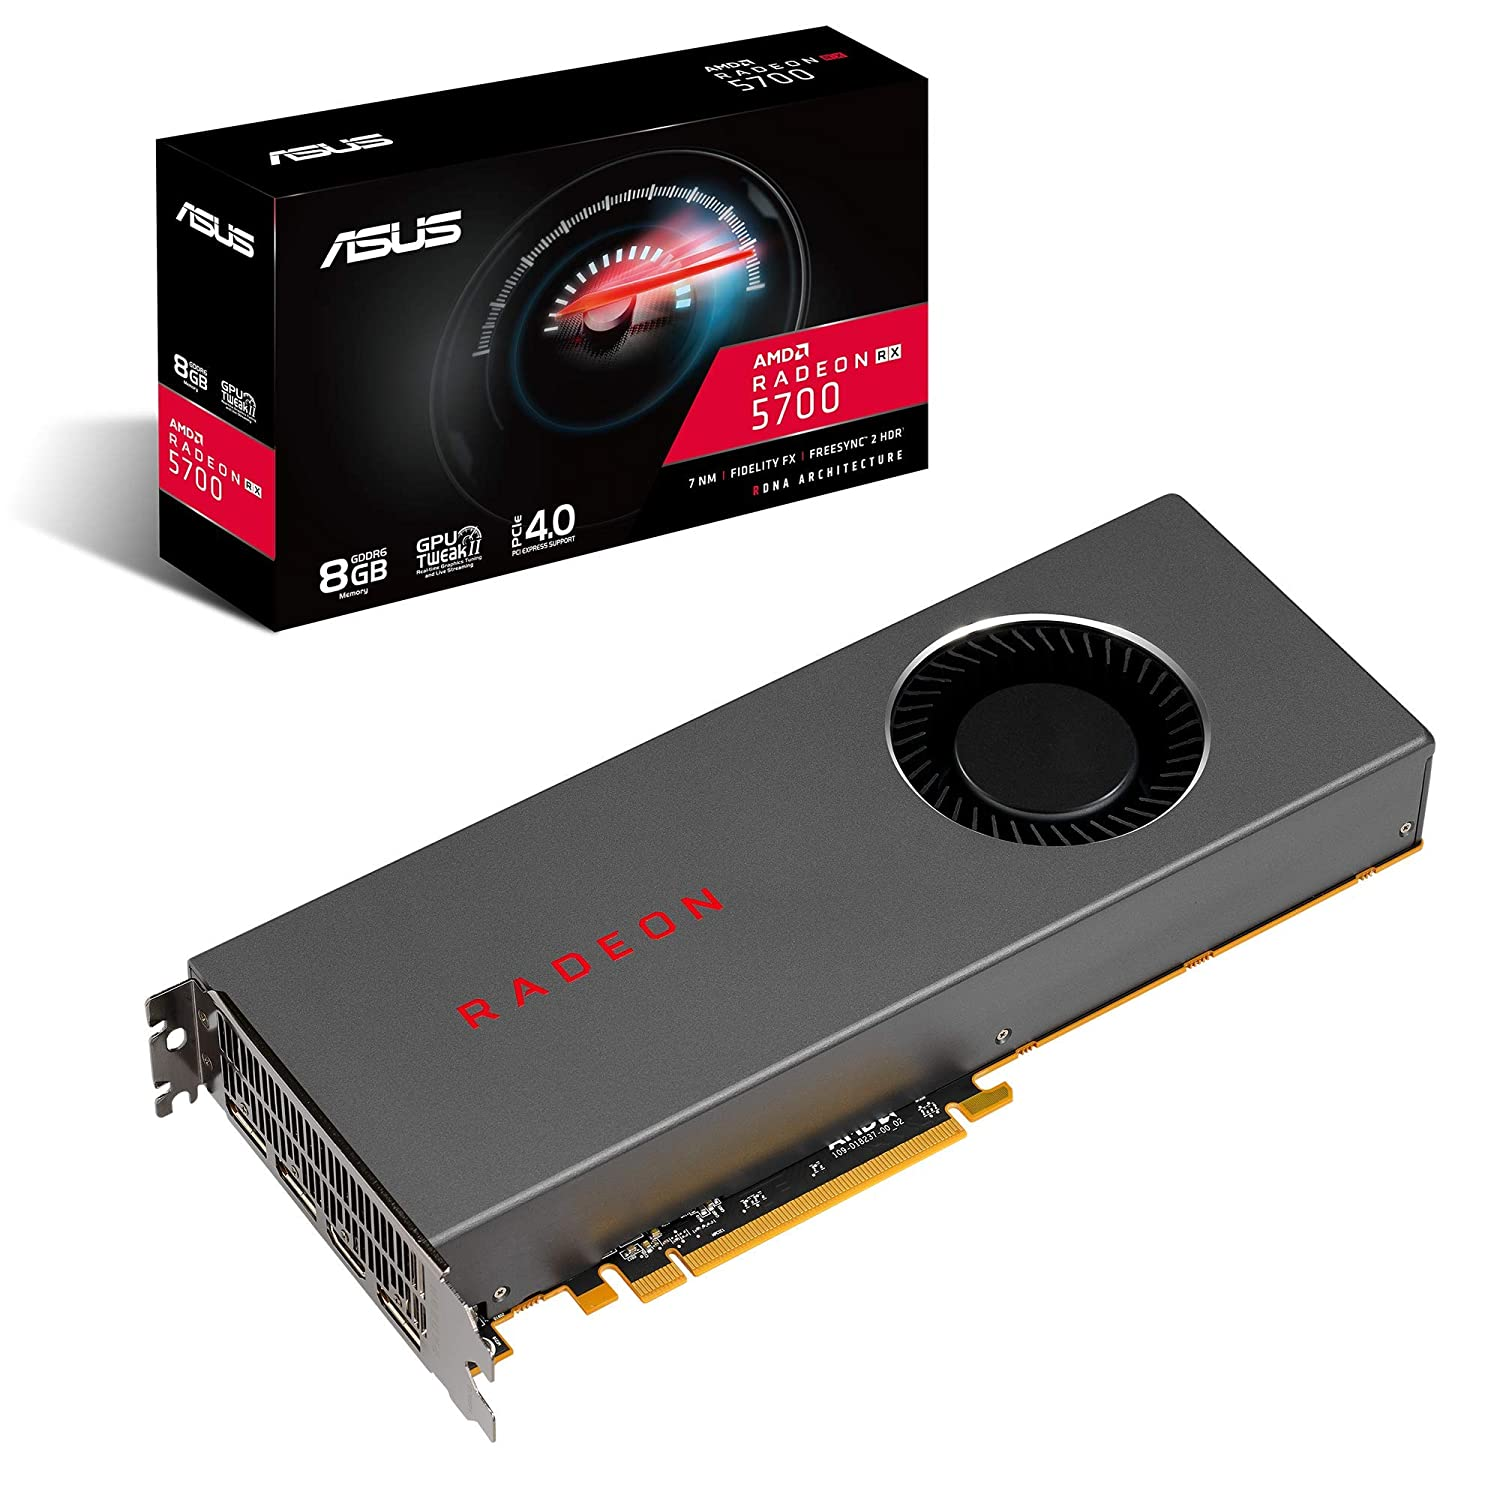 https://www.artistogram.in/2019/12/the-best-graphics-cards-2020-all-top.html